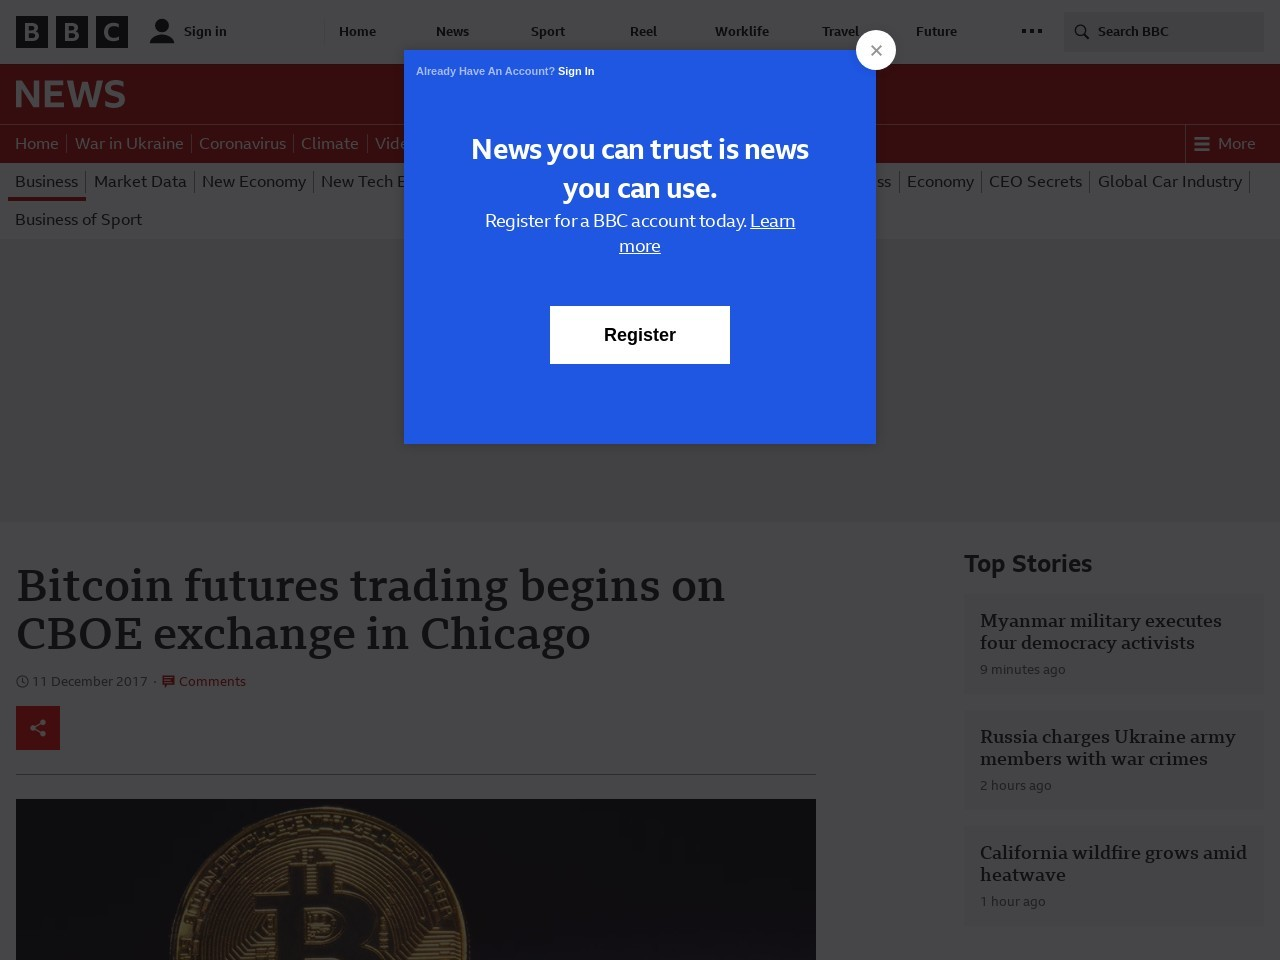 Bitcoin futures trading begins on Cboe exchange in Chicago